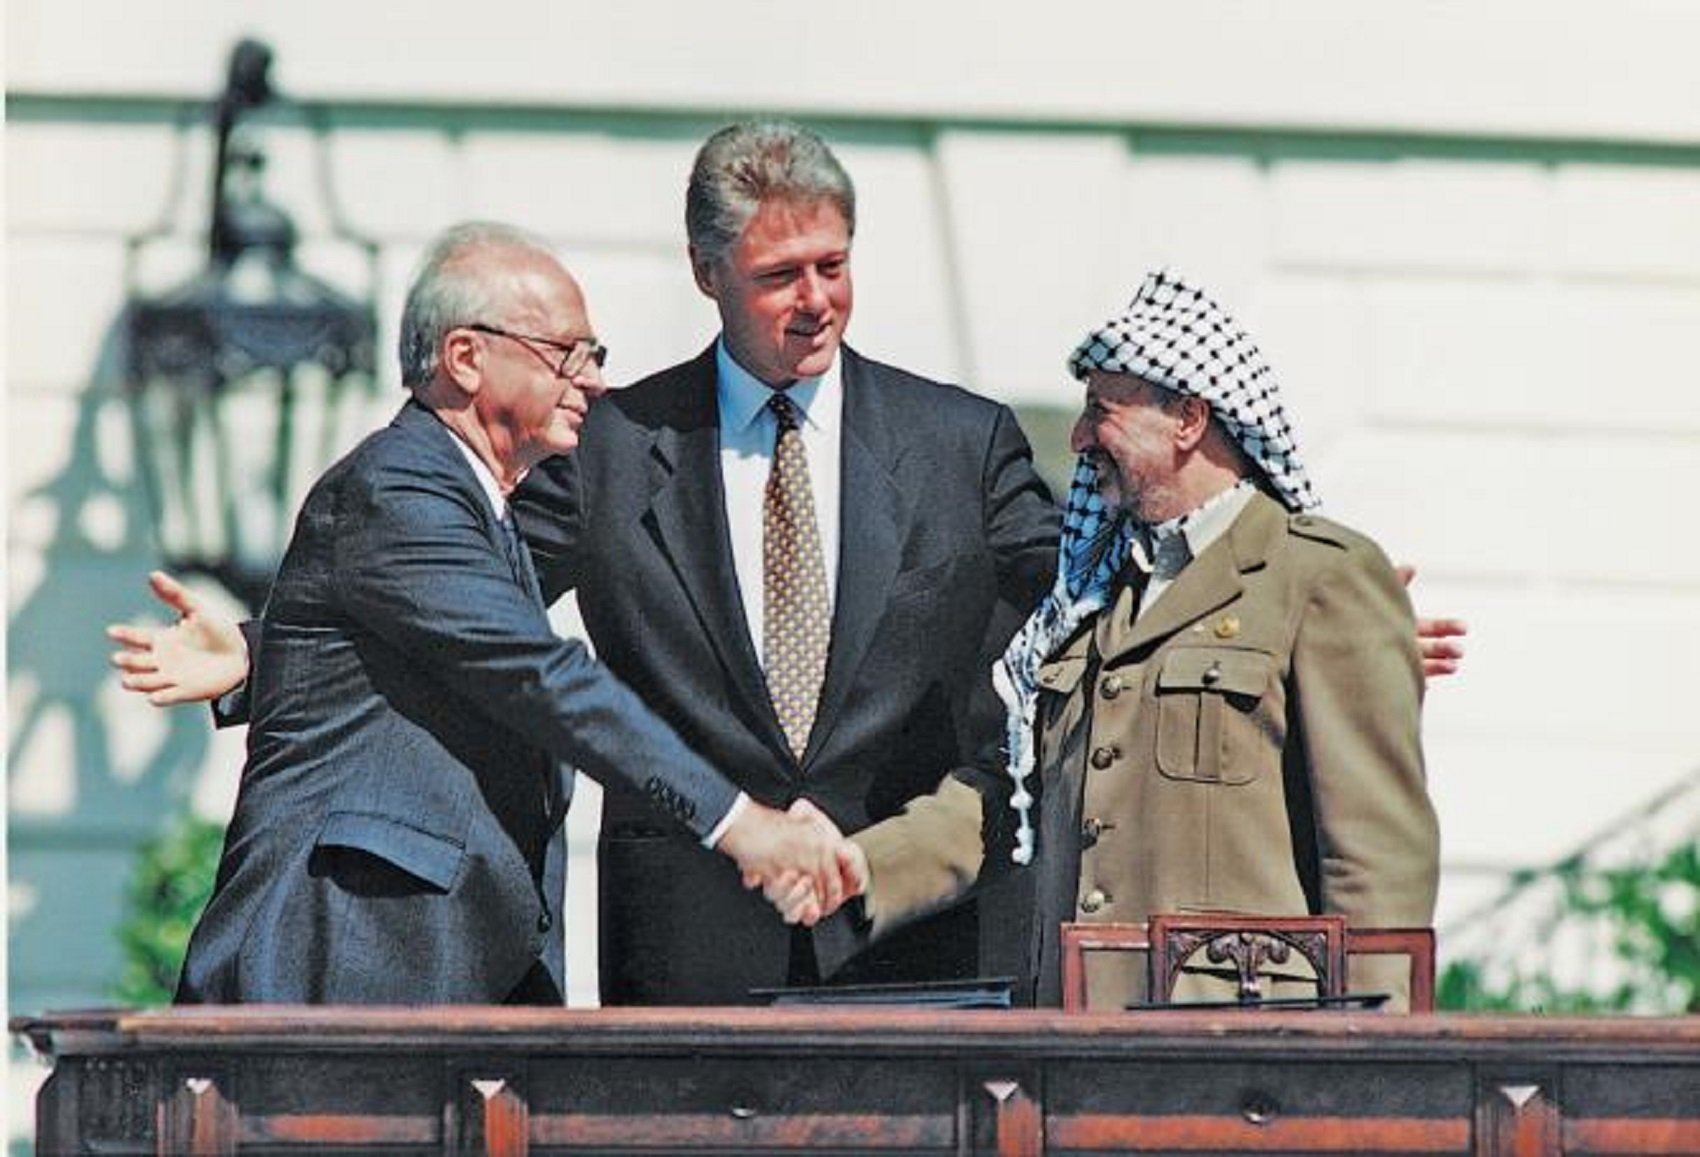 Signing-of-the-Oslo-accords-13-Sep-1993_UN-photo-Resize